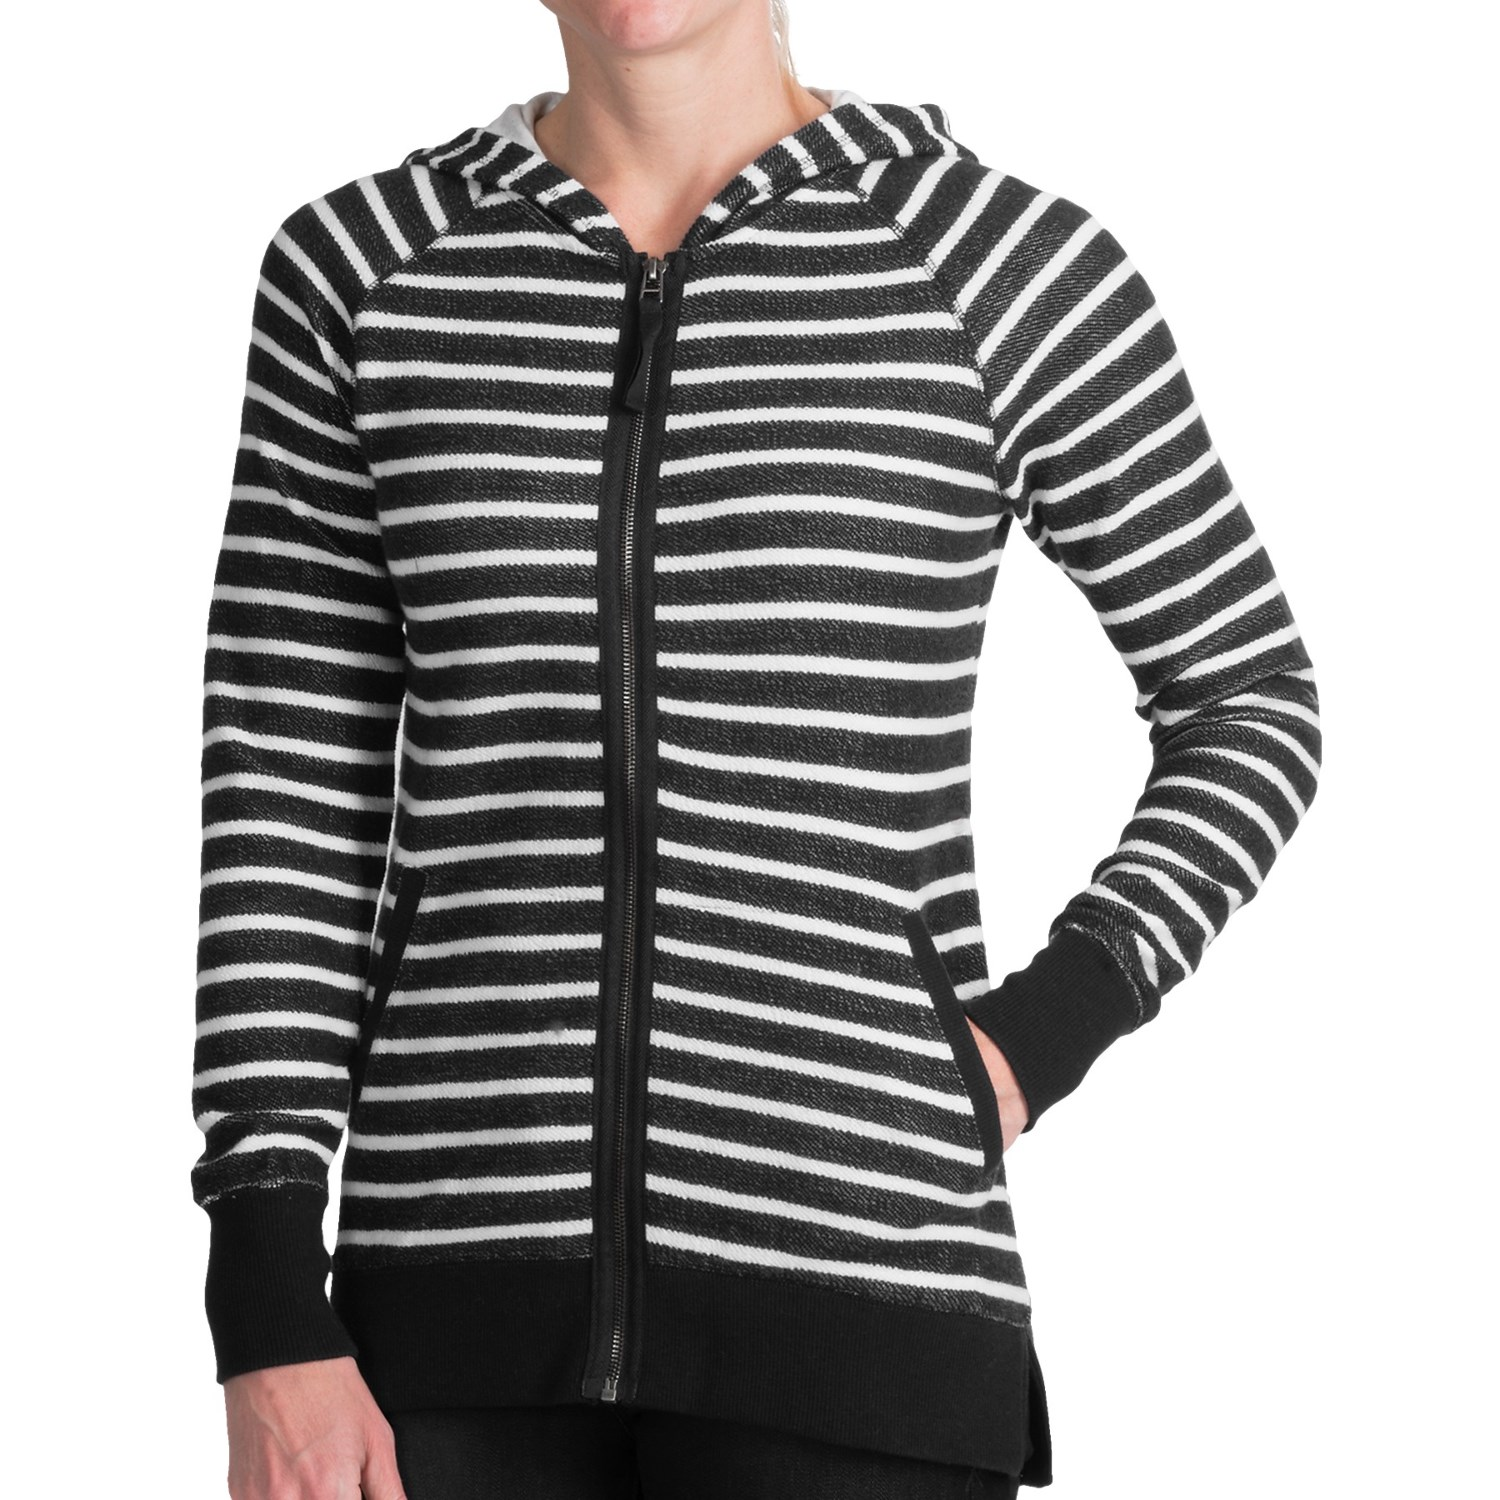 Submit Your Own Image · AJ Andrea Jovine Striped Hoodie